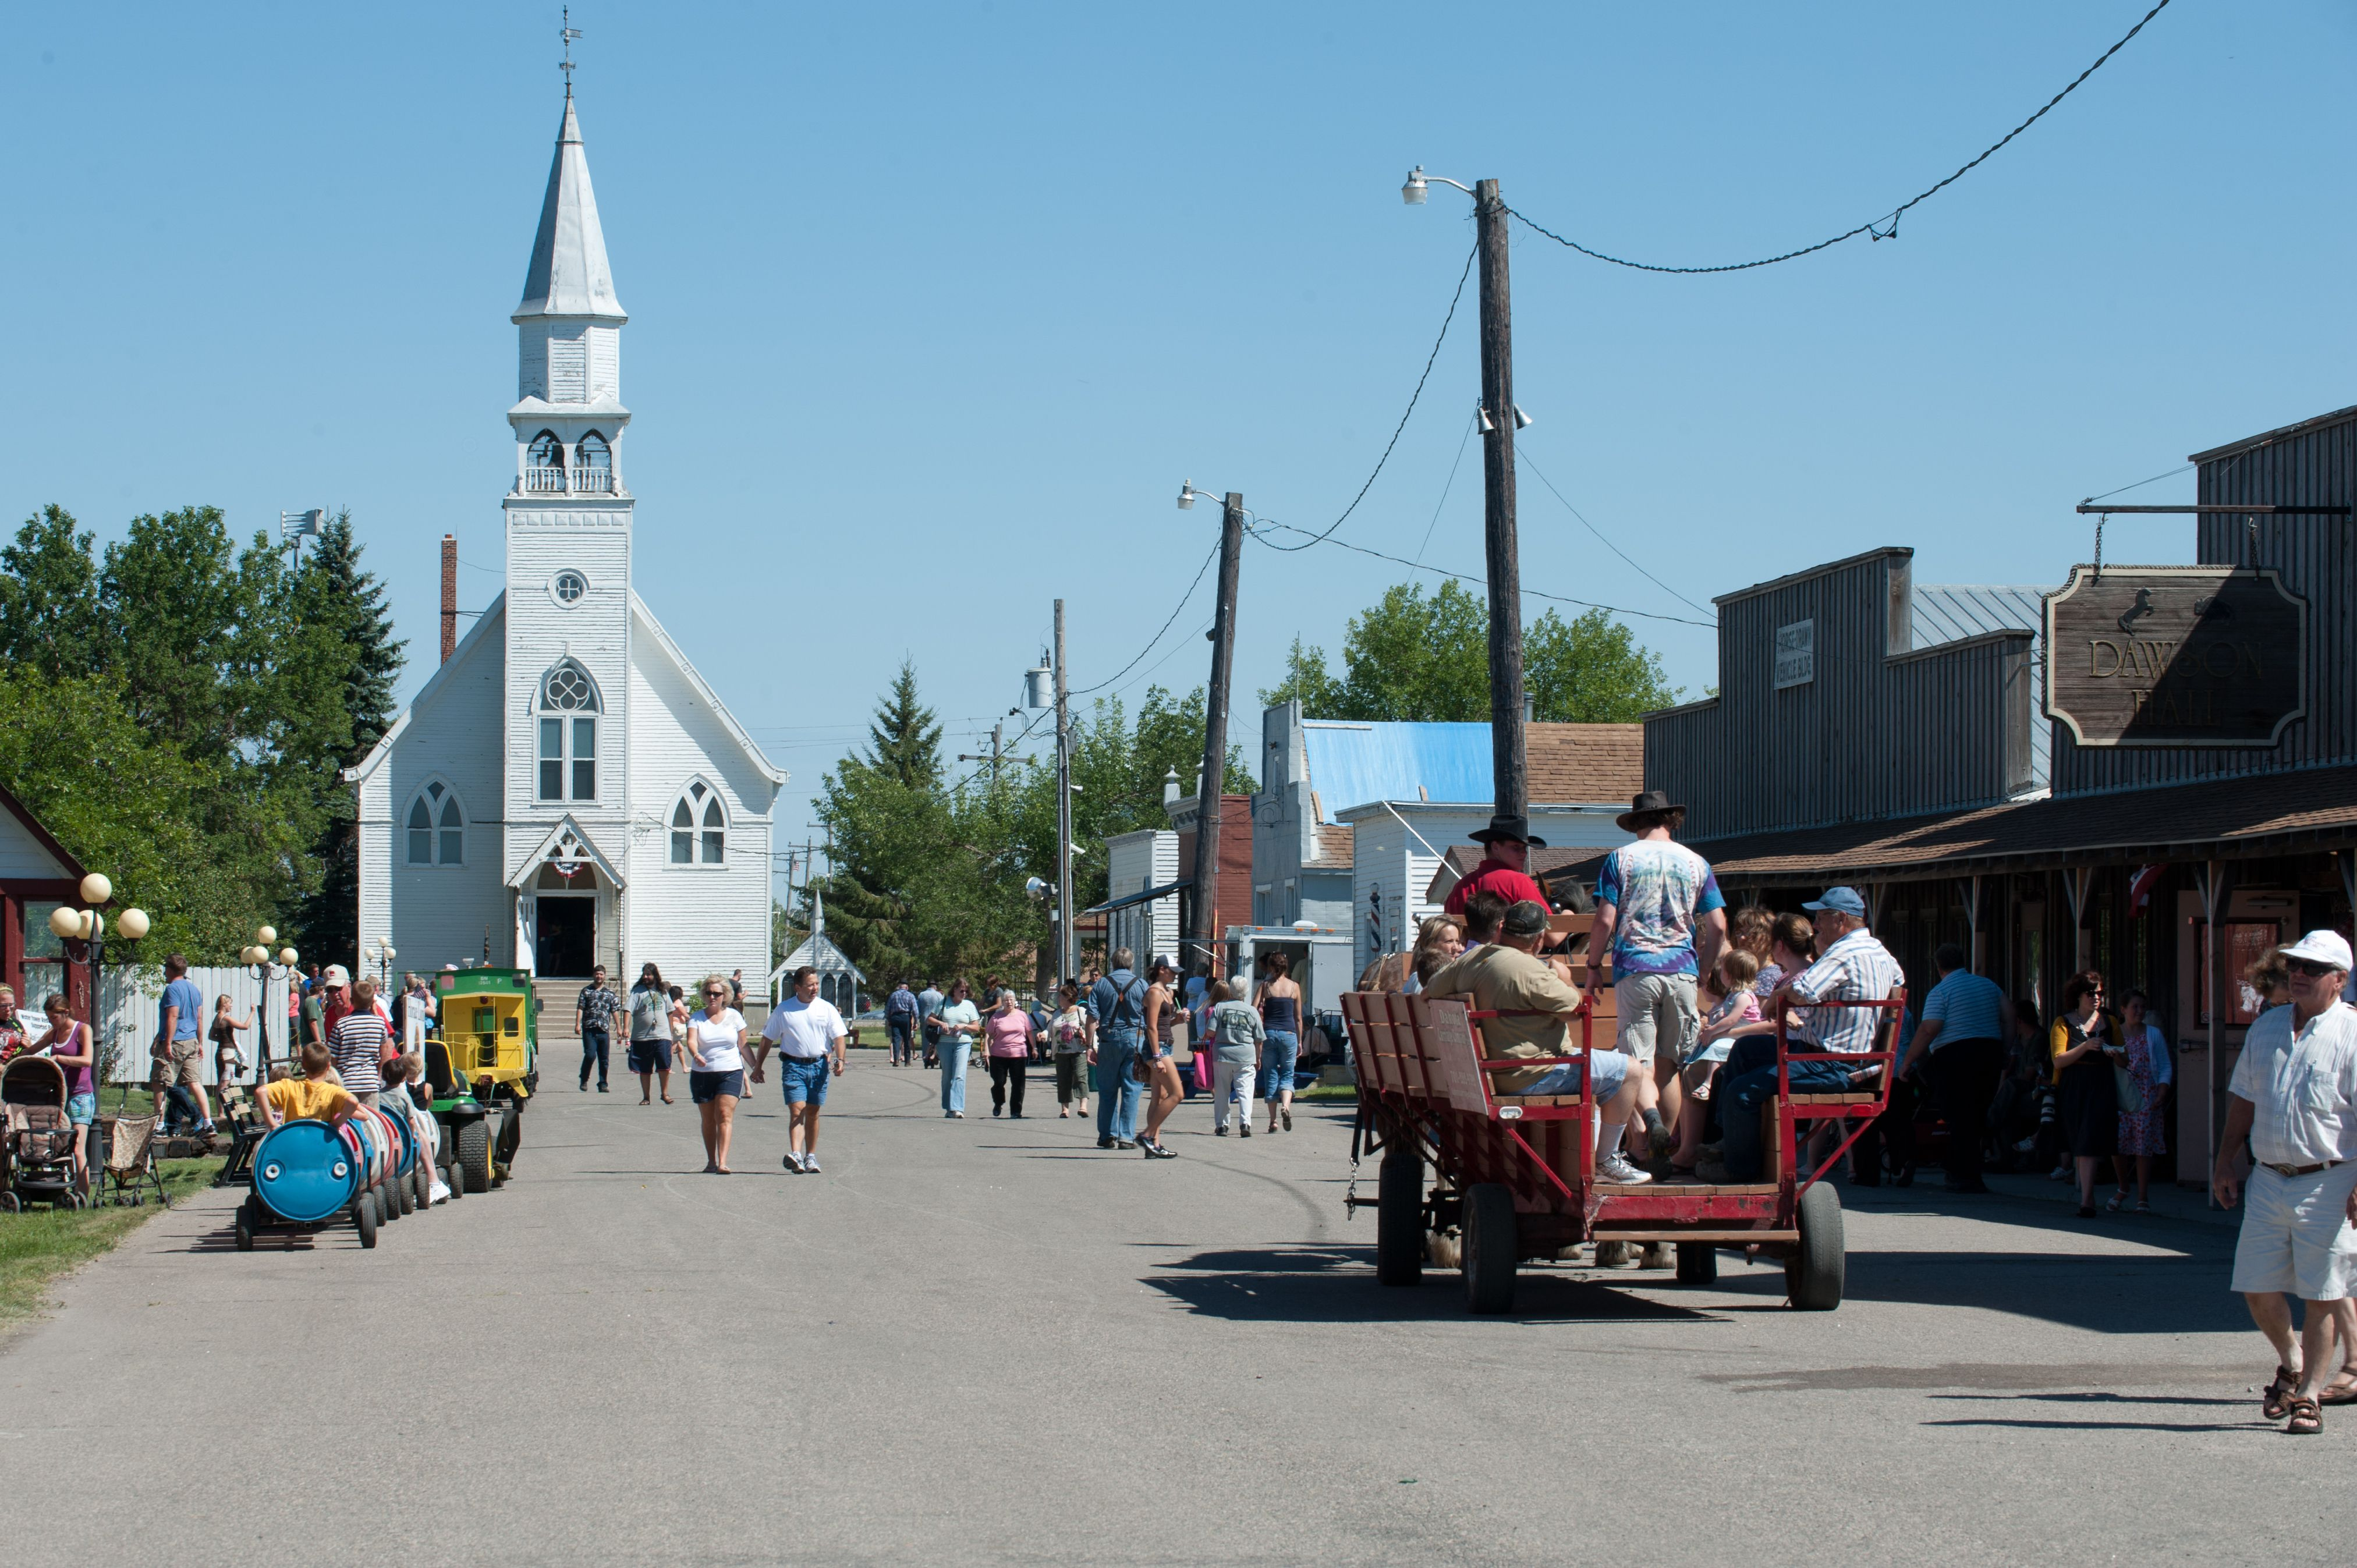 Pioneer Days at Bonanzaville in Fargo, ND! West fargo